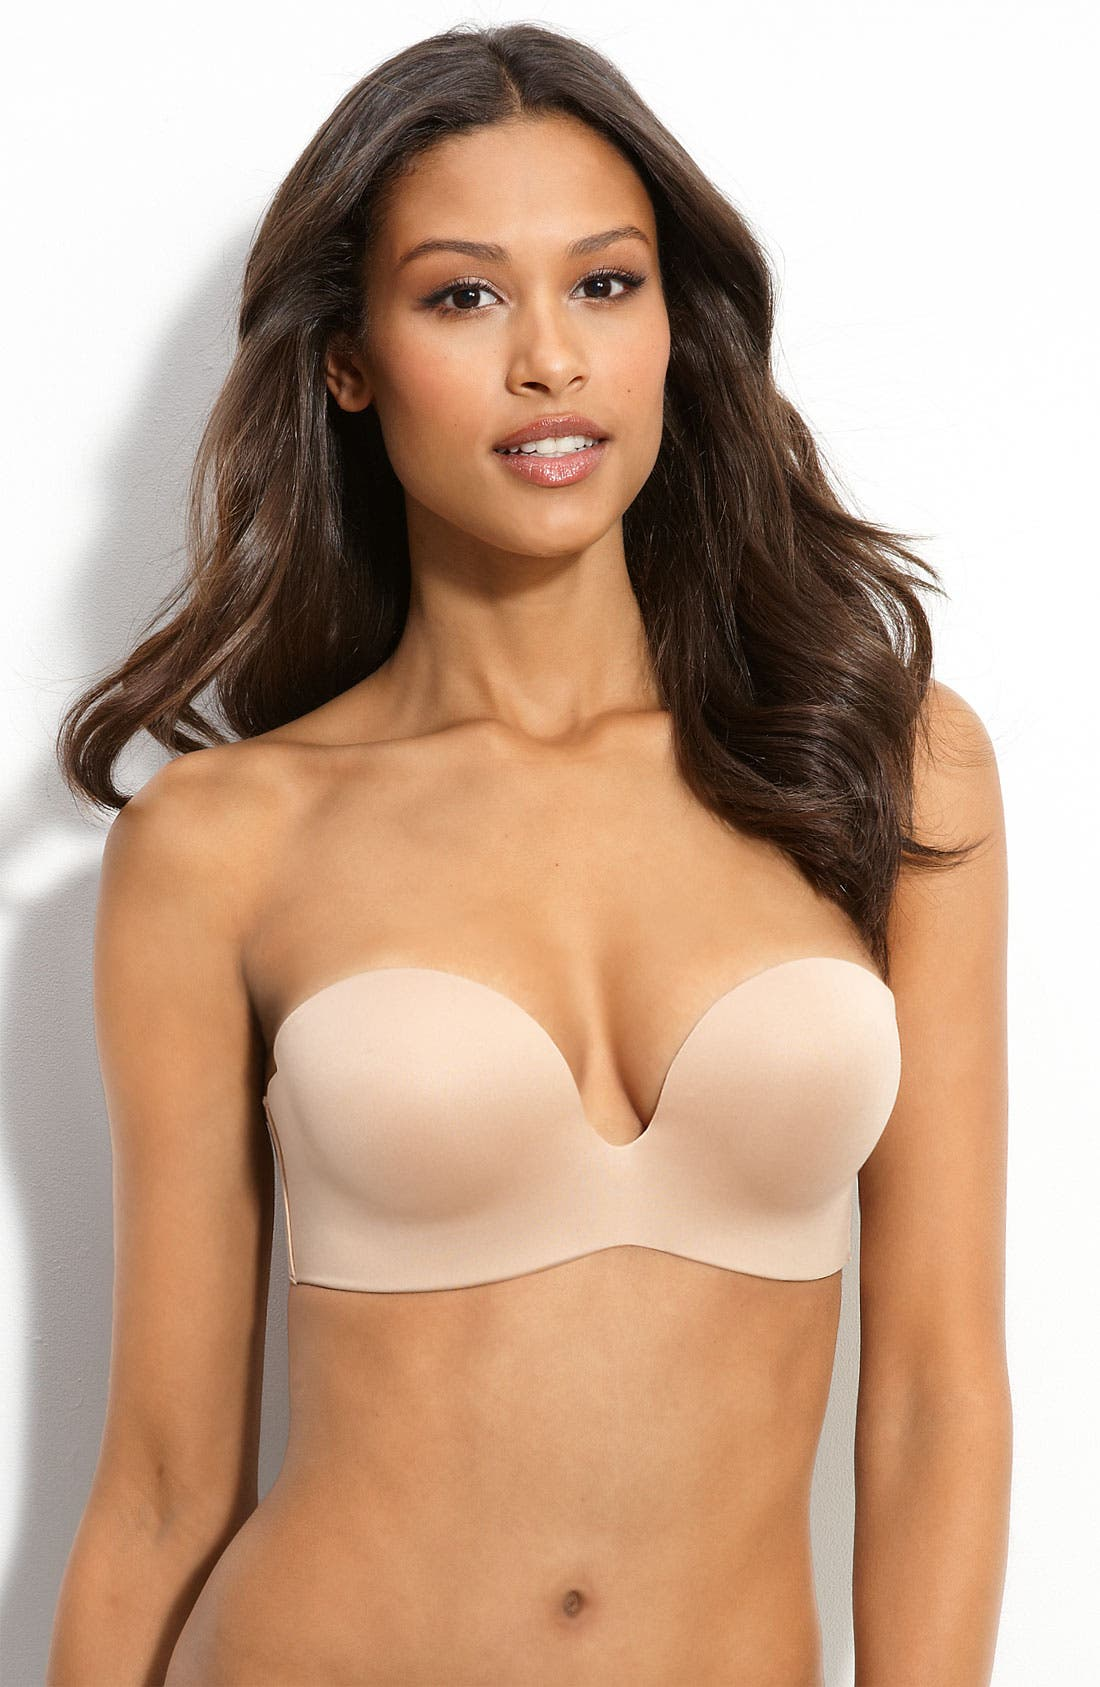 Alternate Image 1 Selected - Nordstrom Intimates 'Super Boost' Backless Underwire Bra